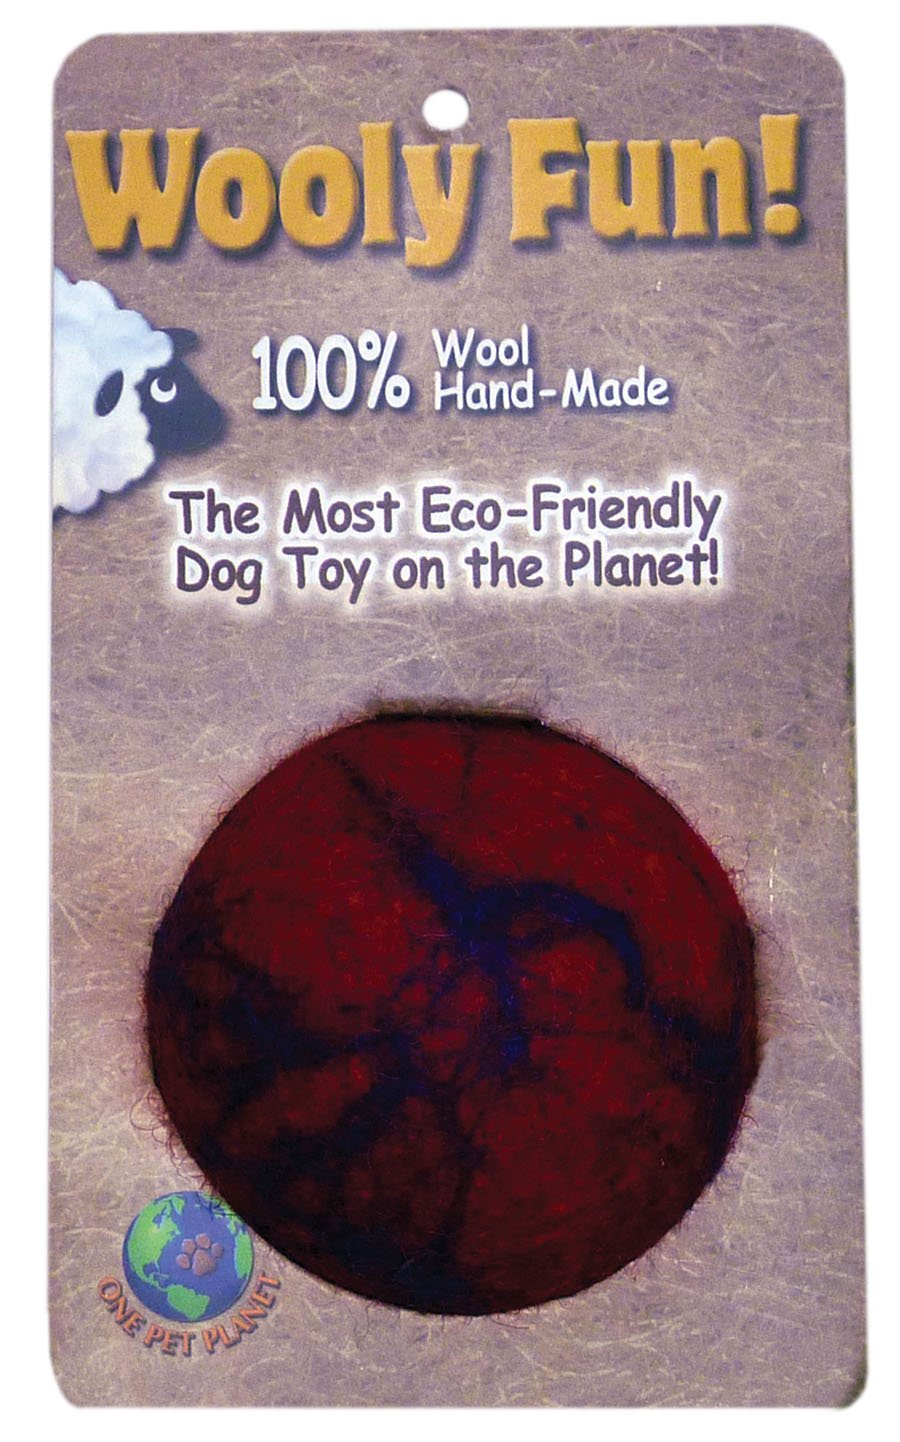 One Pet Planet 86079 2.75-Inch Wooly Fun Ball Dog Toy